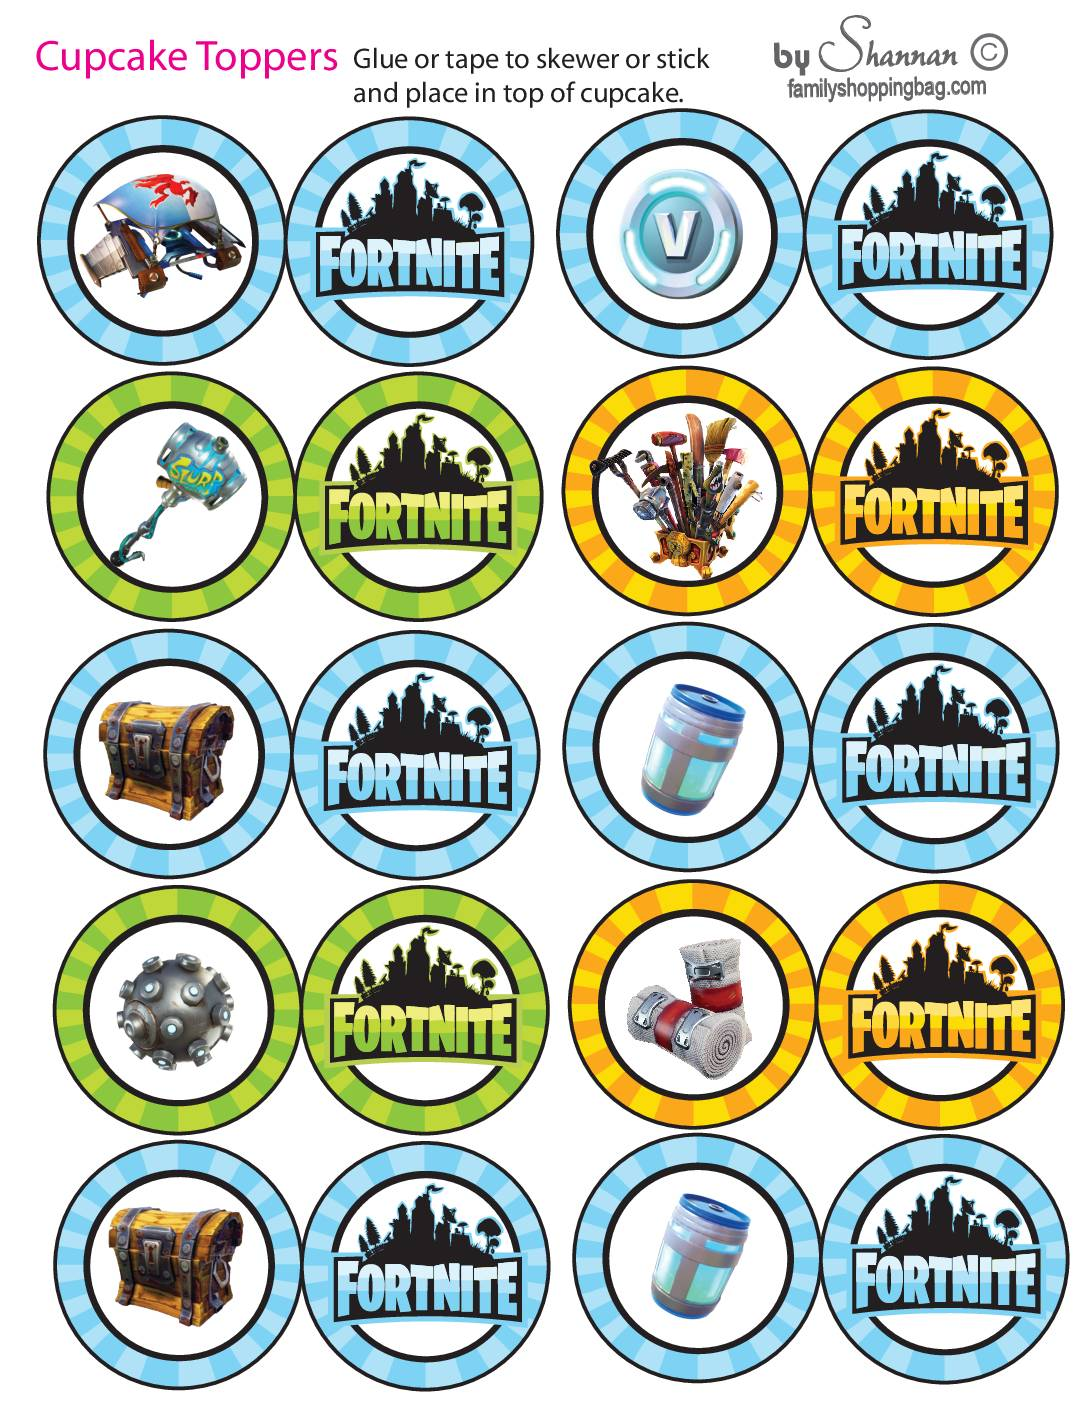 Cupcake Toppers Fortnite